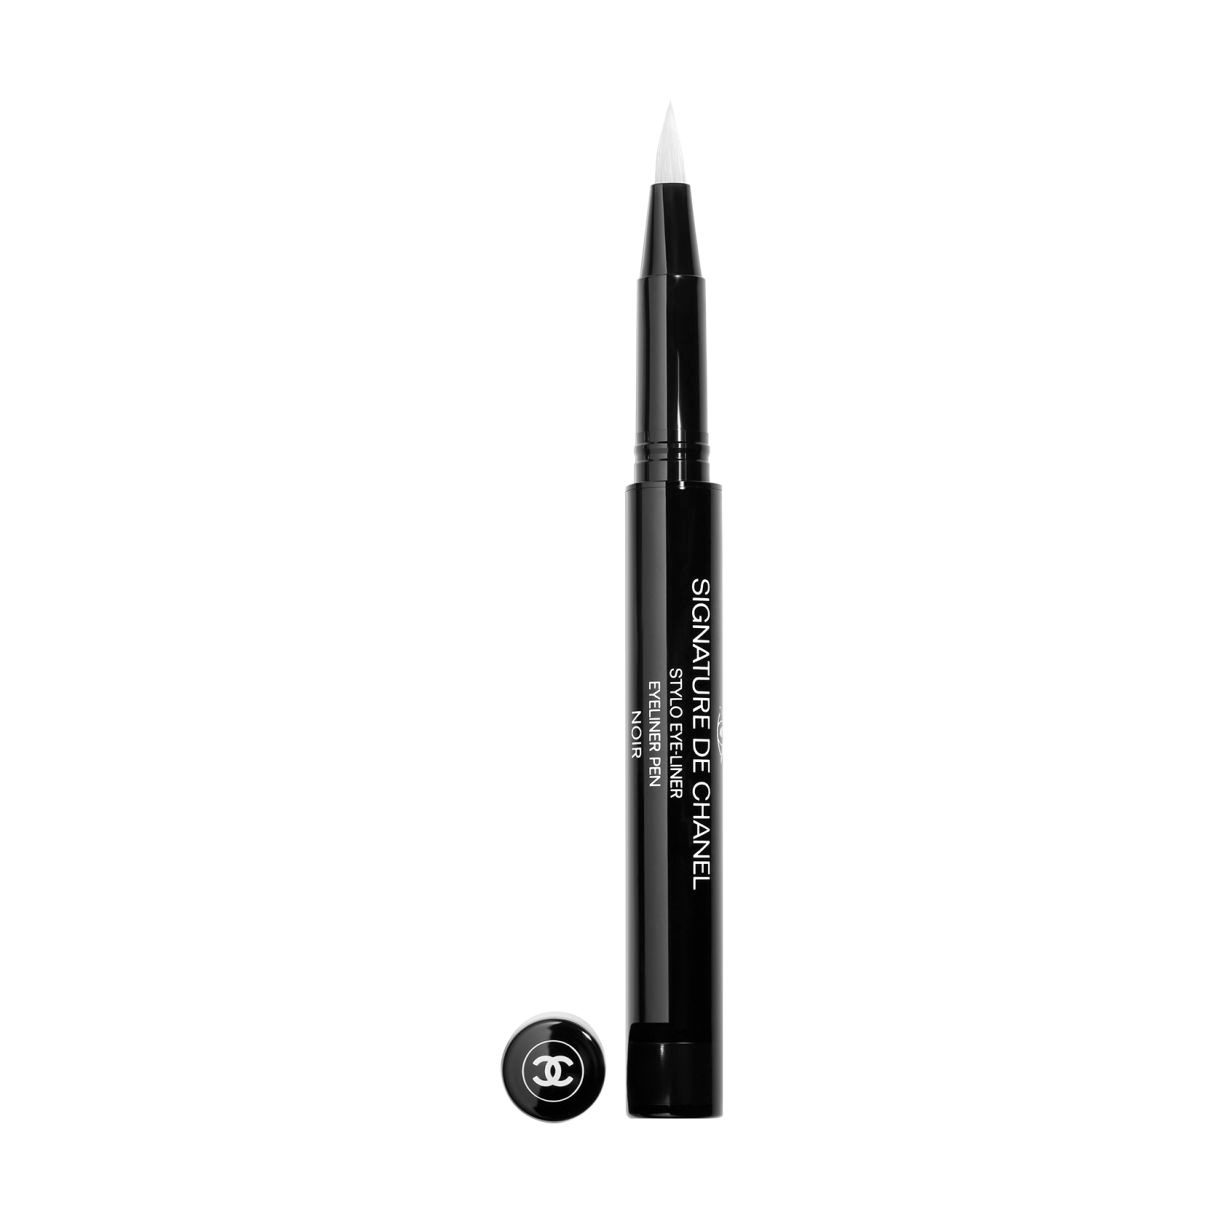 SIGNATURE DE CHANEL STILO EYELINER INTENSITÀ E LUNGA TENUTA